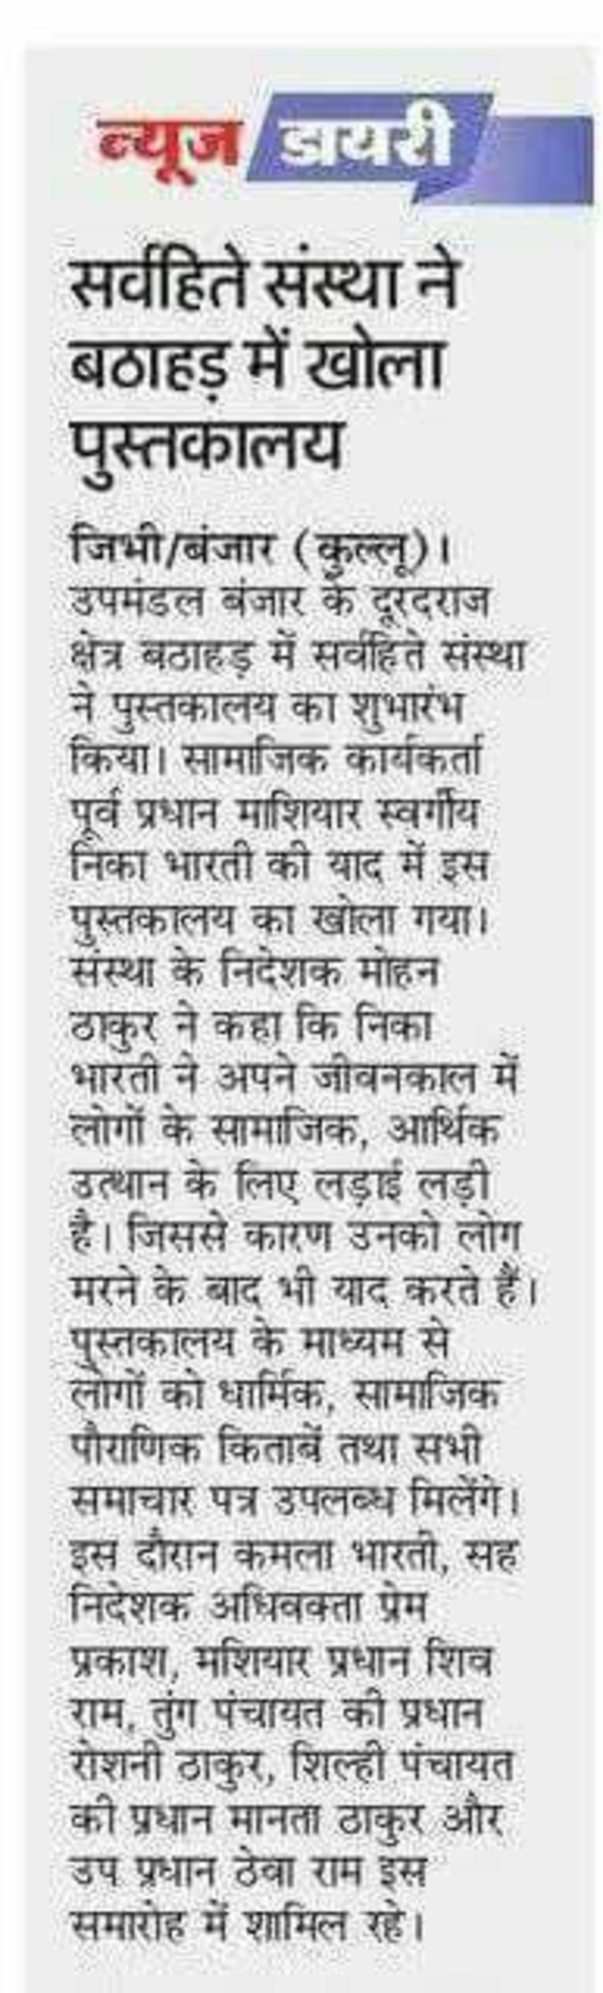 A mention of Sarvahitey's Library in the local newspaper of Himachal